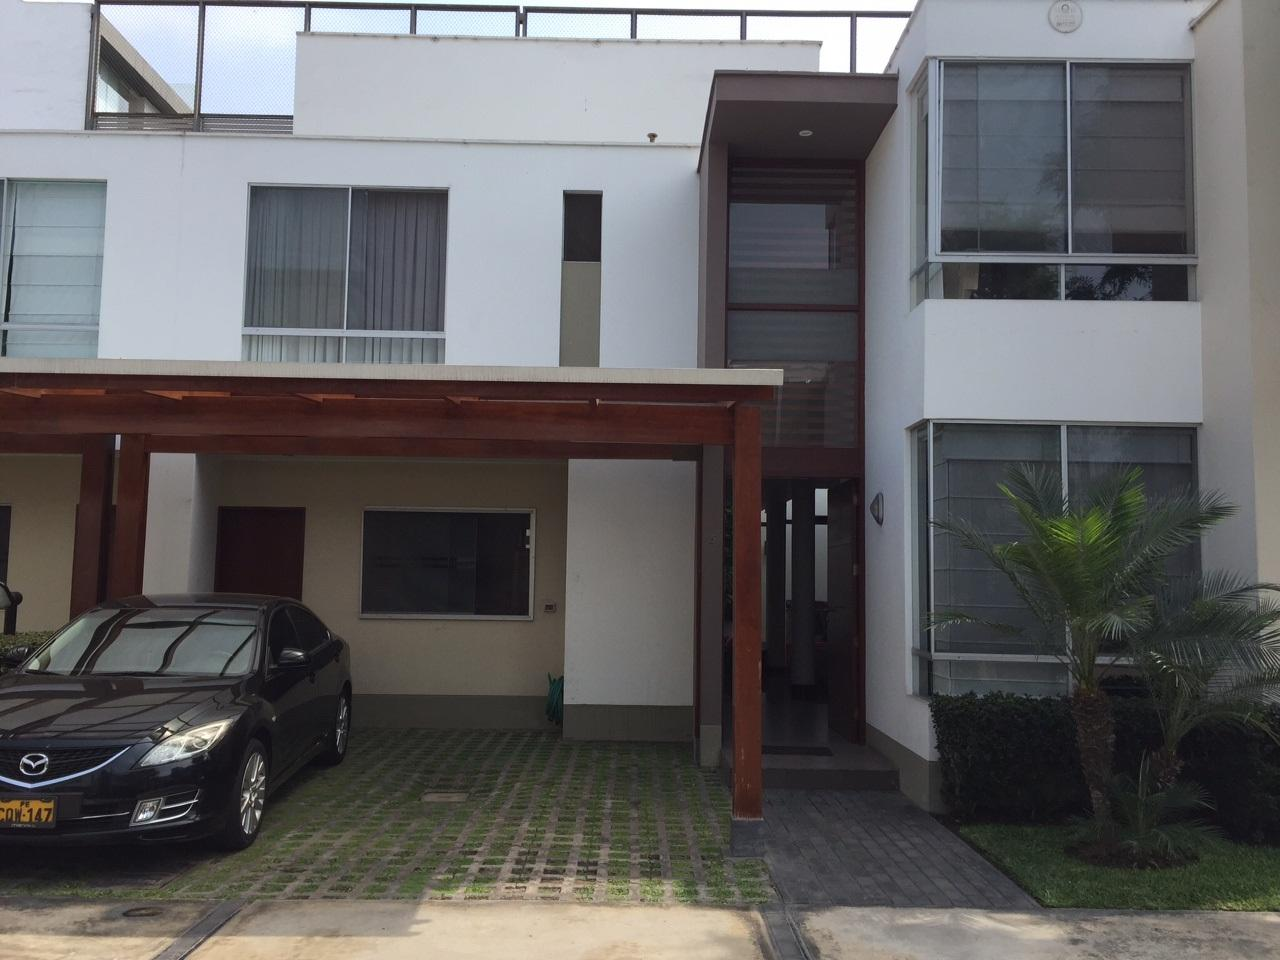 SE VENDE EXCLUSIVA CASA EN CONDOMINIO - SURCO